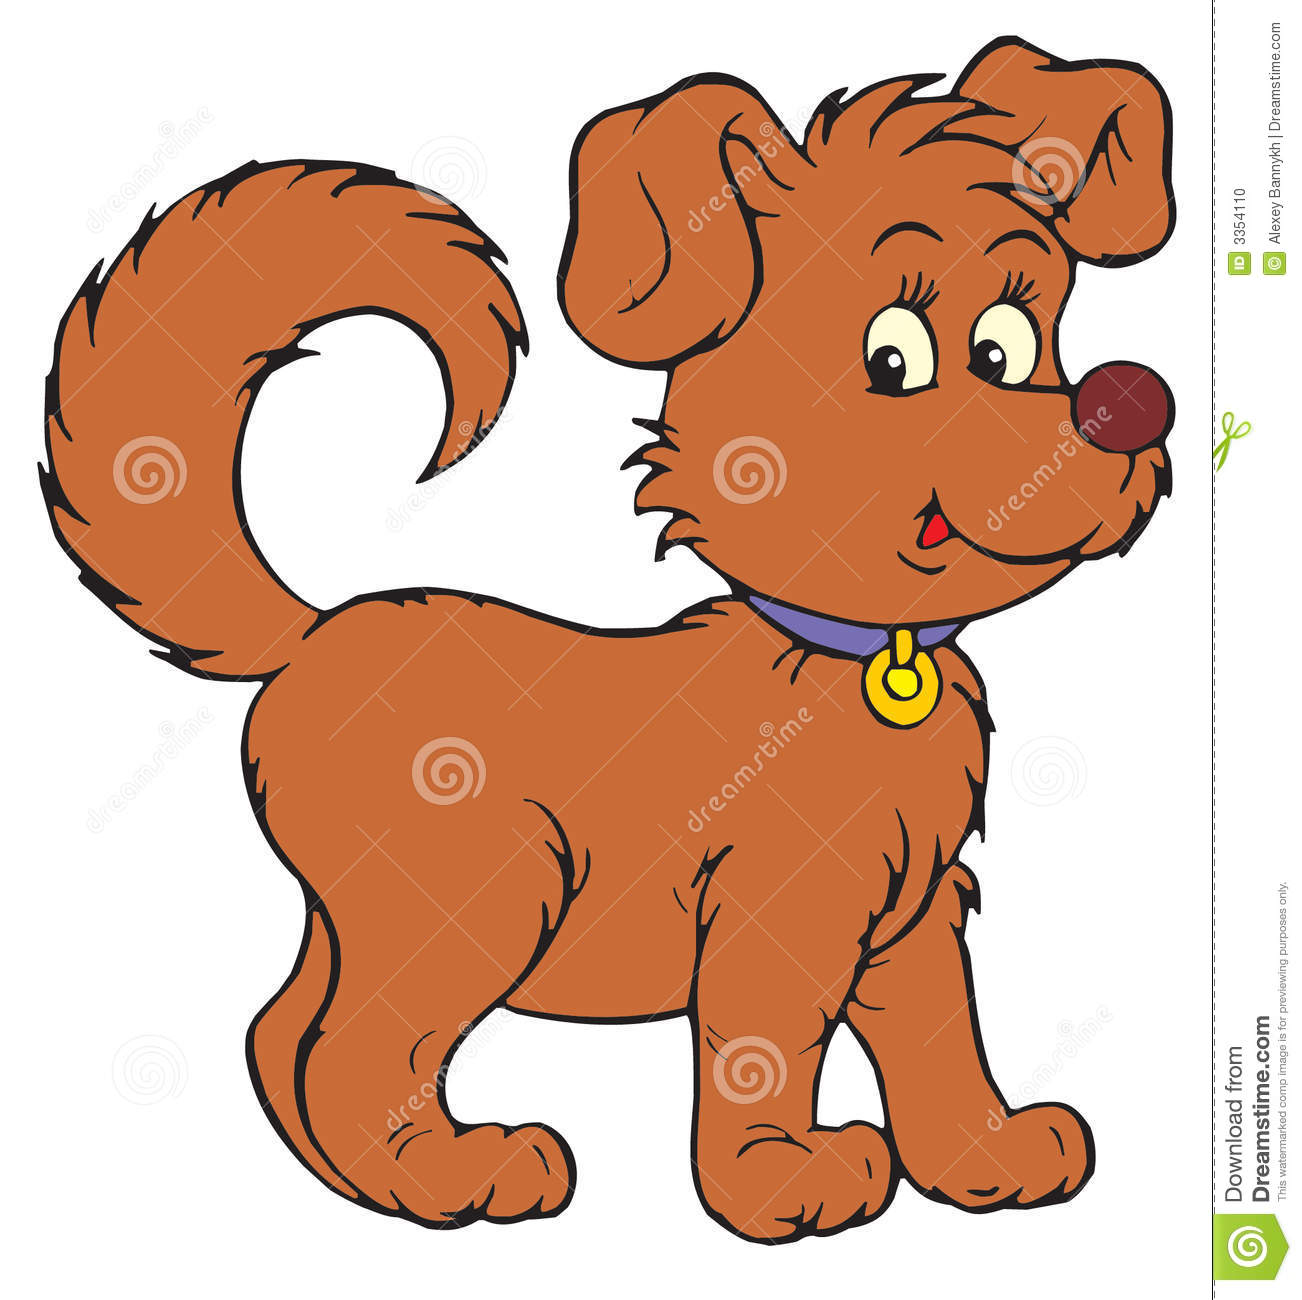 Dog clipart stock vector library stock Dog (vector Clip-art) Stock Photos - Image: 3279703 vector library stock